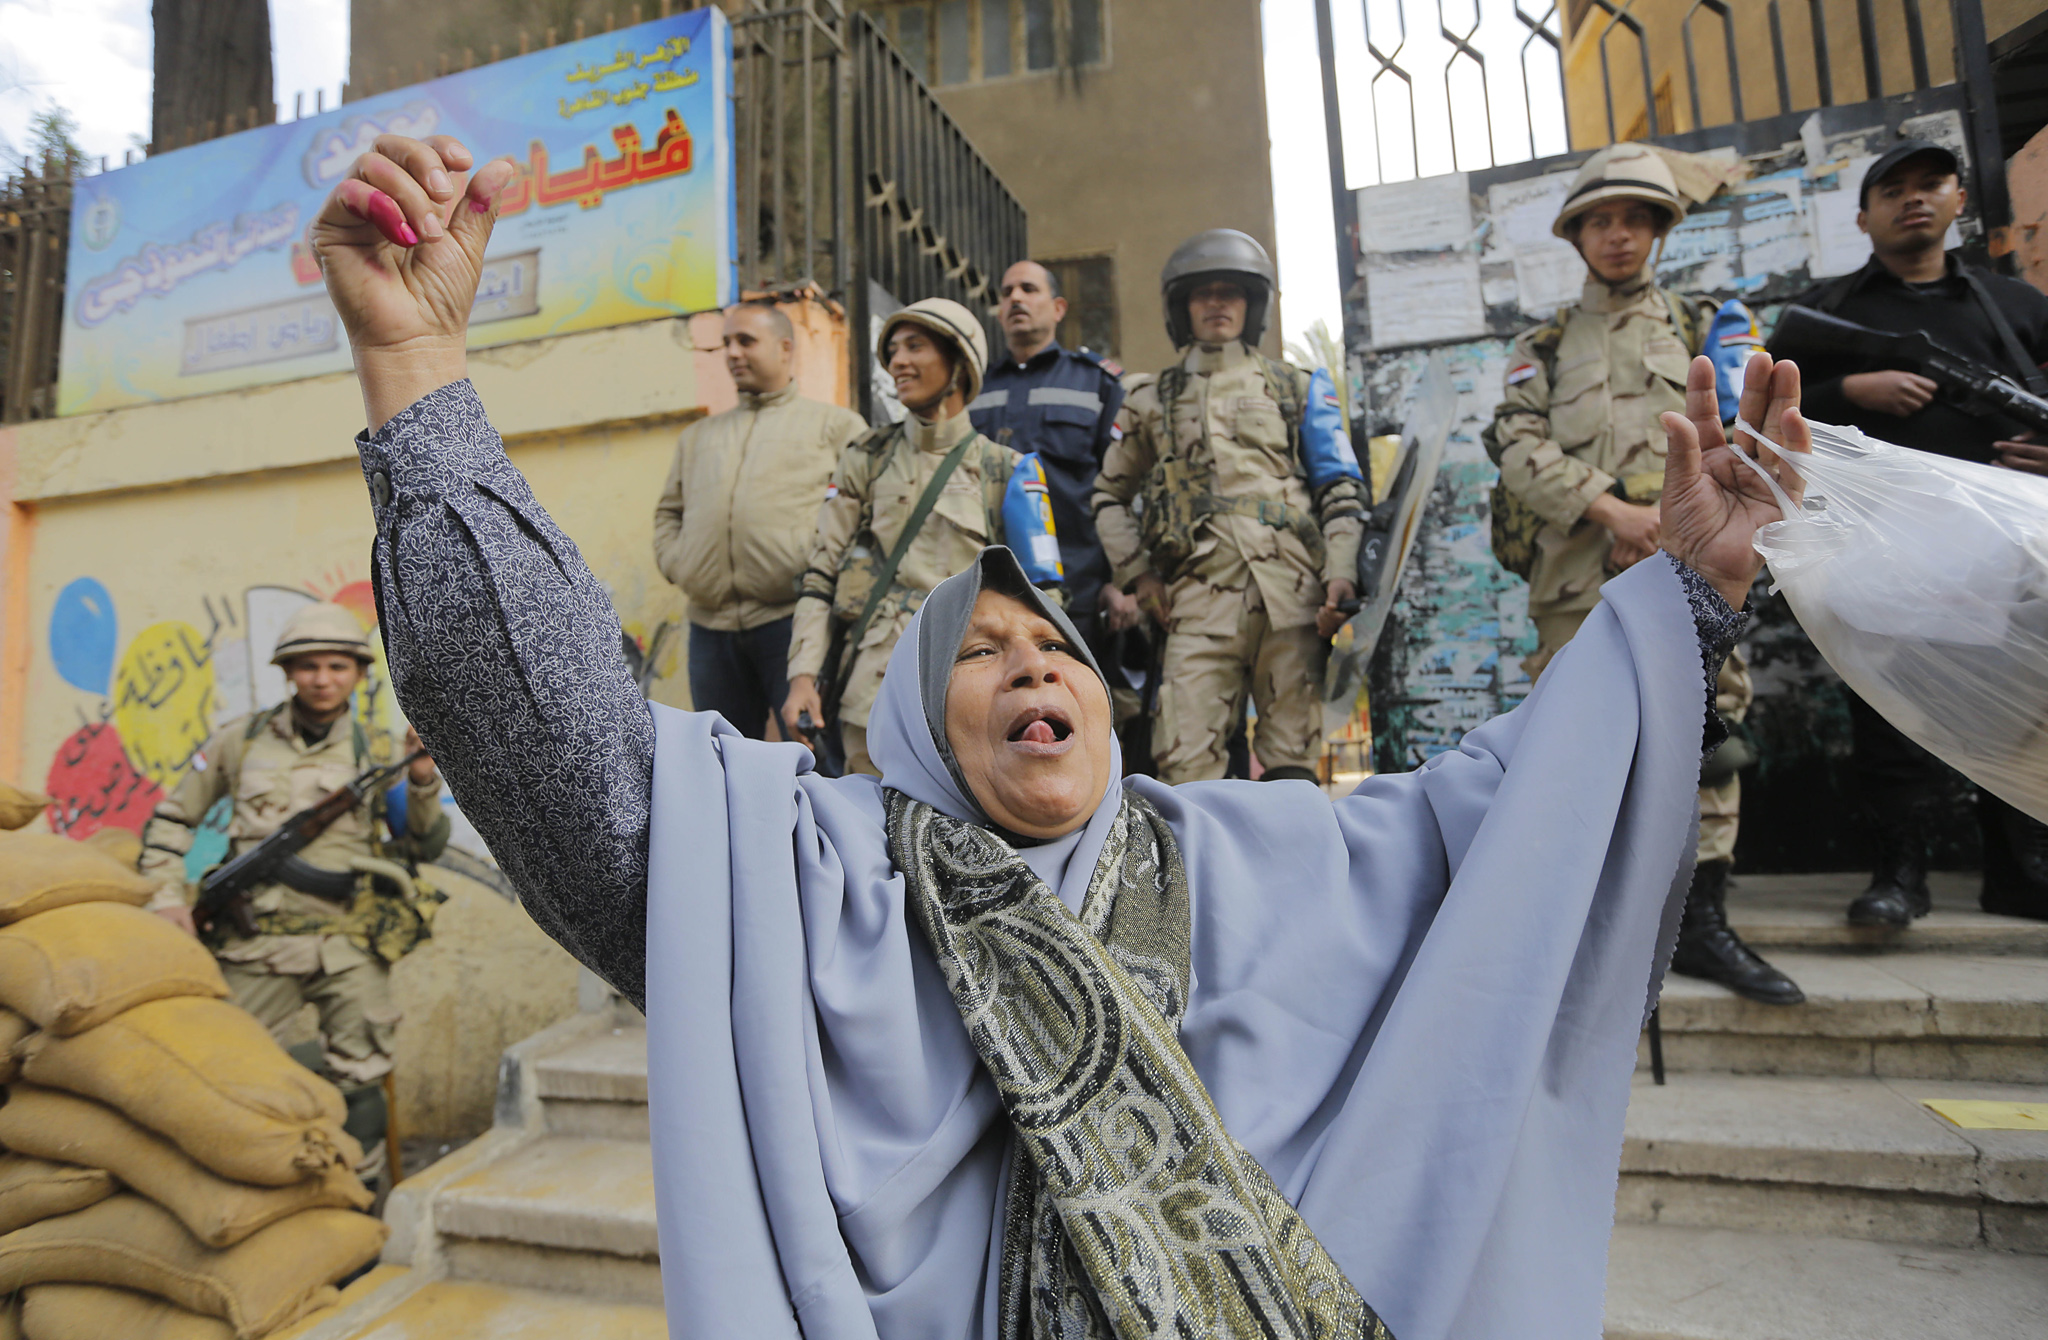 An Egyptian ululates in front of a polling station after casting her vote in Cairo, Egypt, Tuesday, Jan. 14, 2014. Egyptians have started voting on a draft for their country's new constitution that represents a key milestone in a military-backed roadmap put in place after President Mohammed Morsi was overthrown in a popularly backed coup last July. (AP Photo/Amr Nabil)